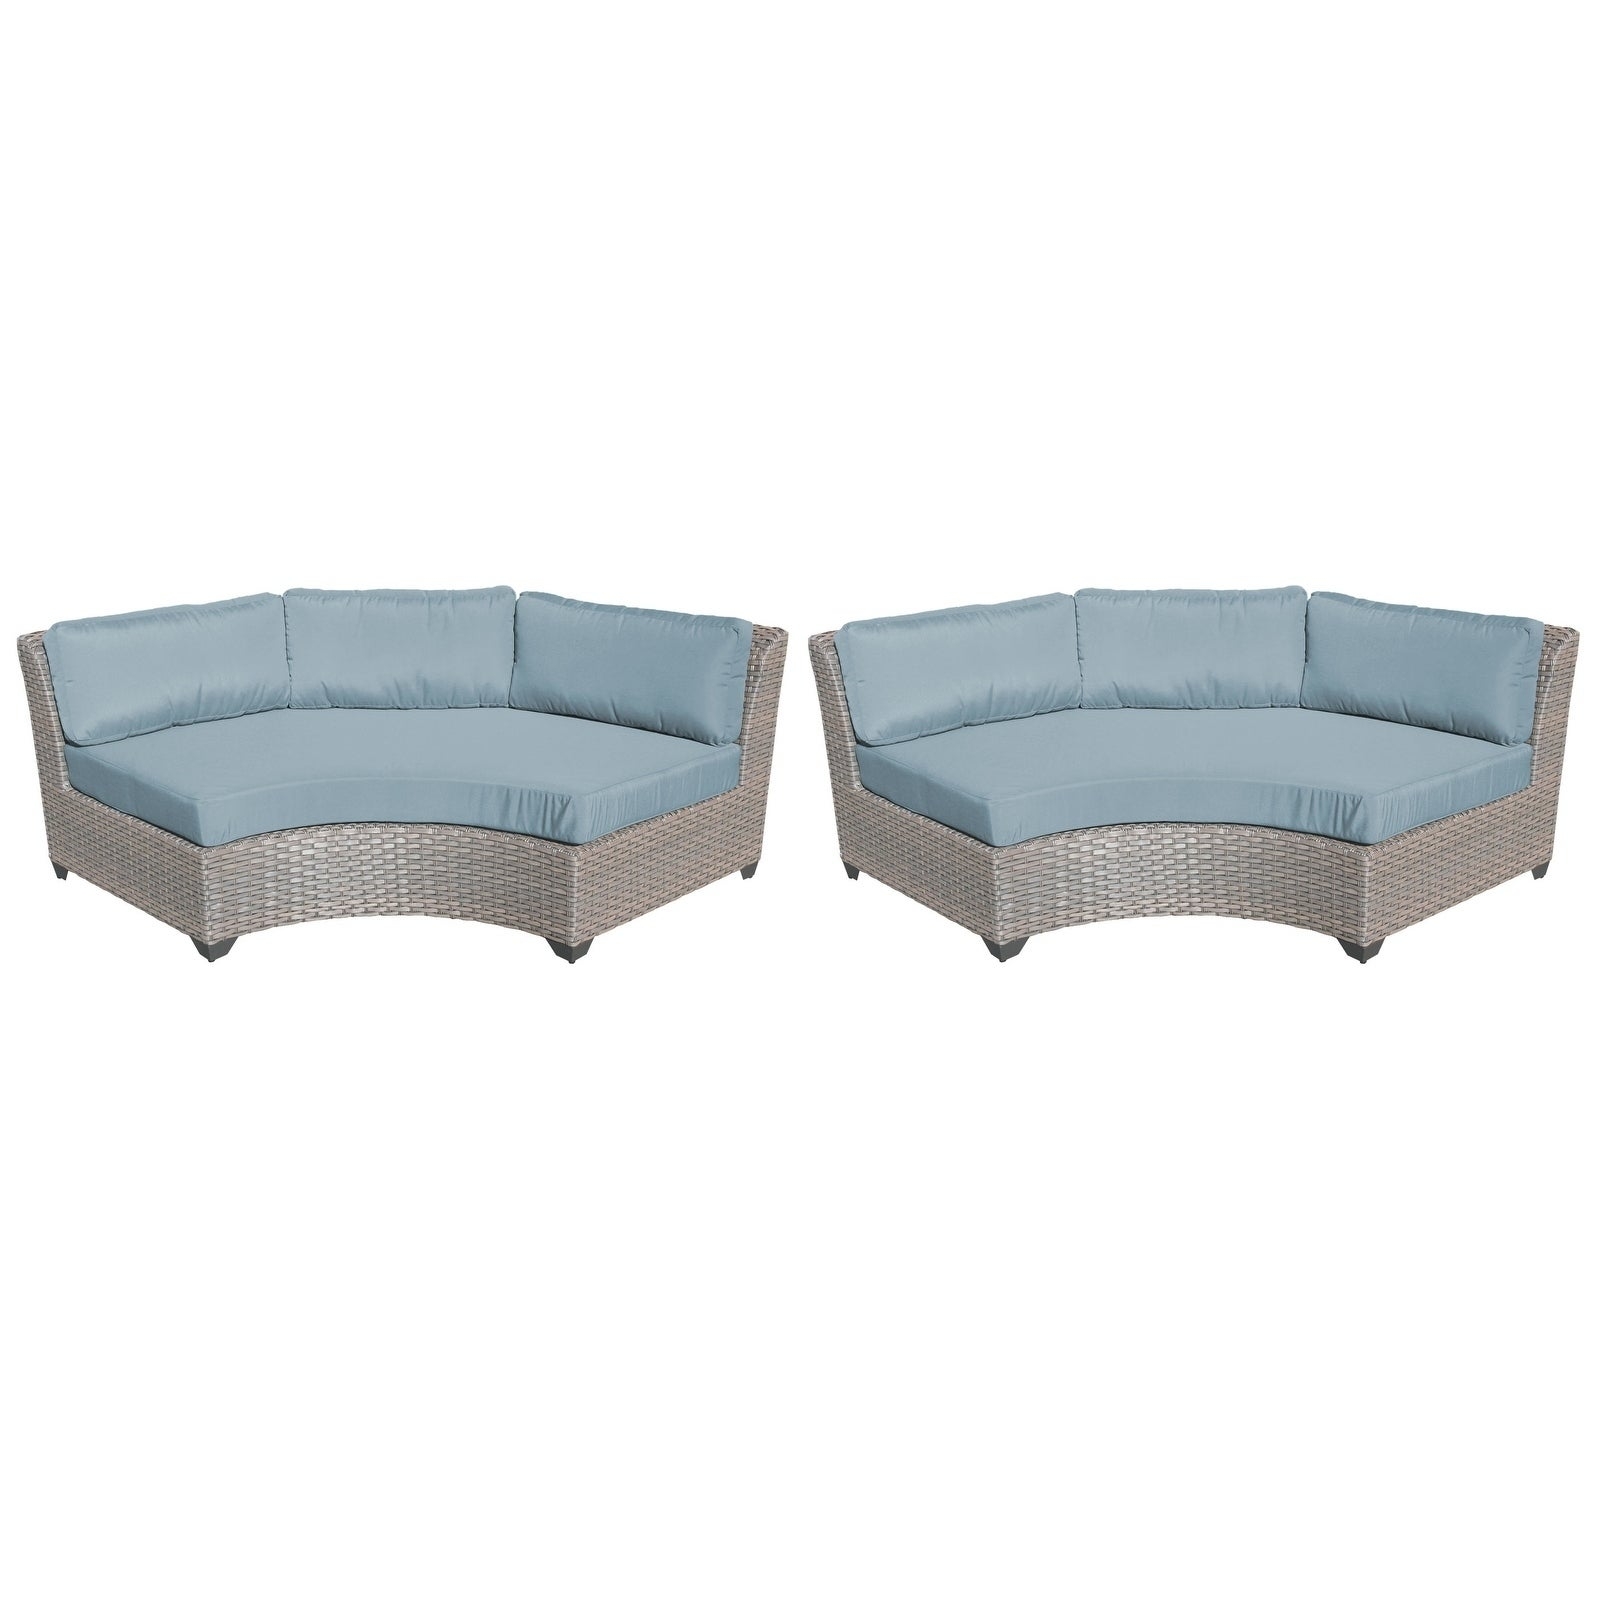 Tk Clics Florence Wicker And Aluminum Curved Armless Outdoor Sofa Set Of 2 Free Shipping Today 24017662